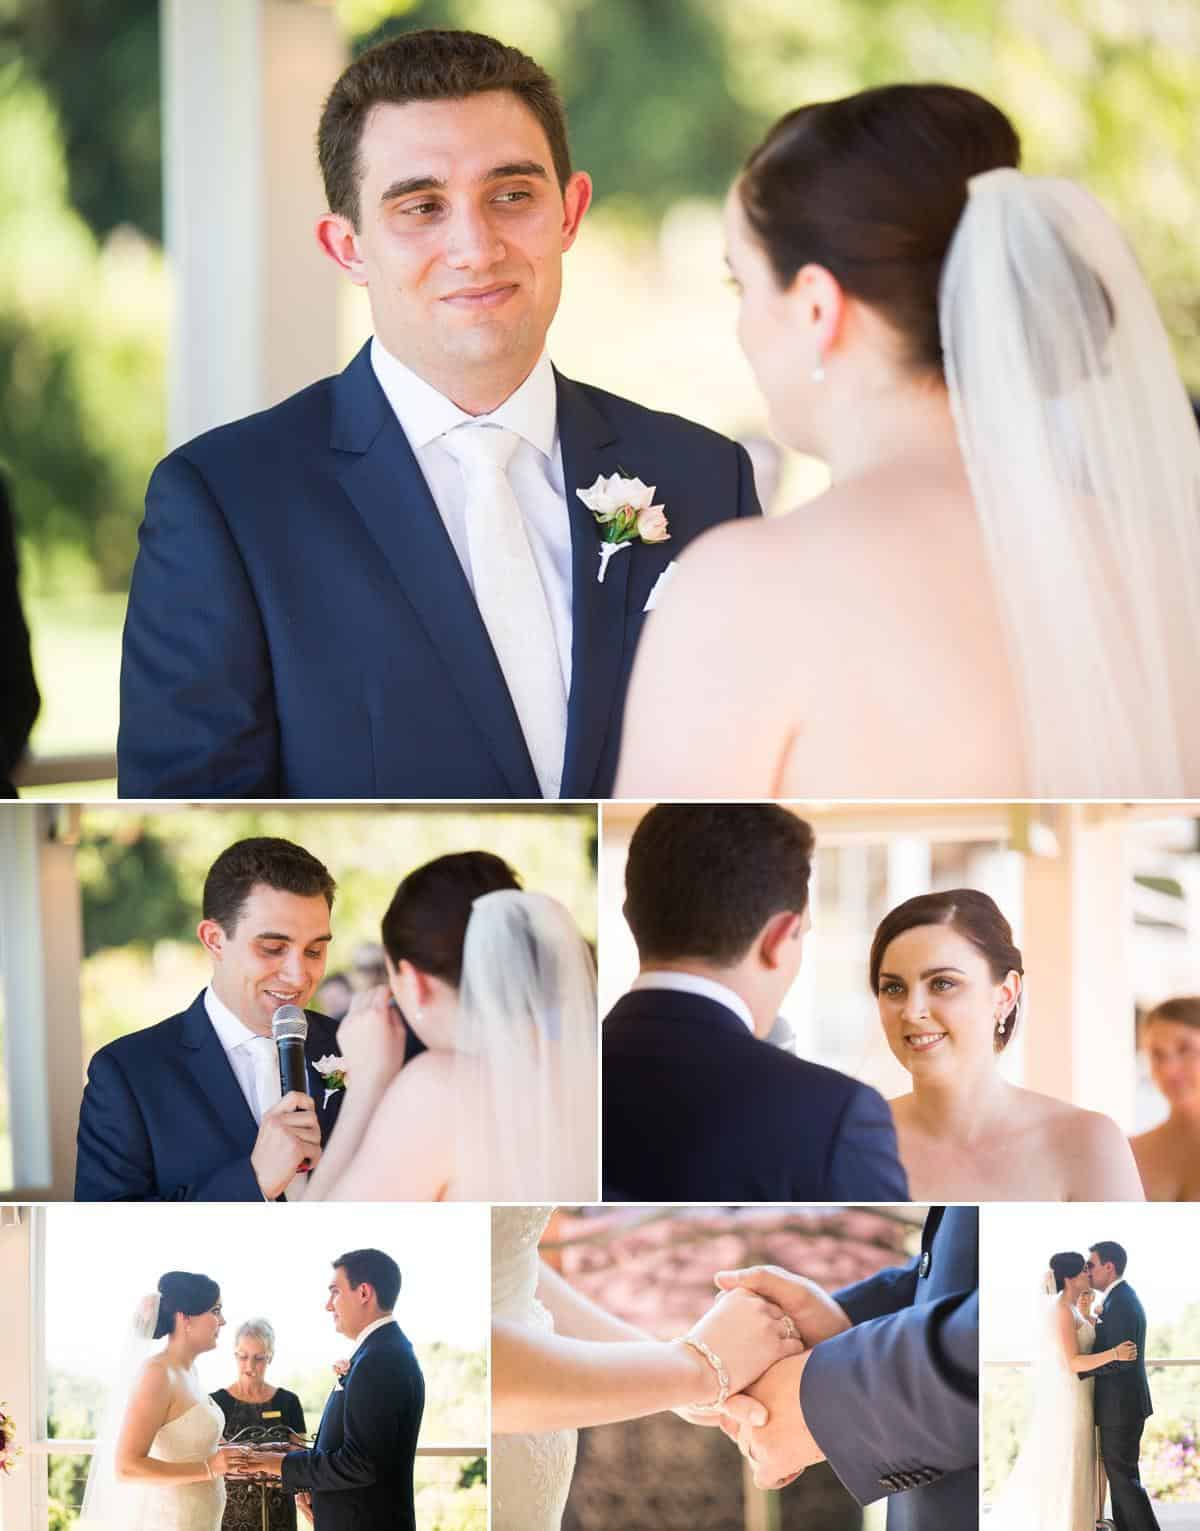 Maleny Manor Sunshine Coast wedding www.benandhopeweddings.com.au